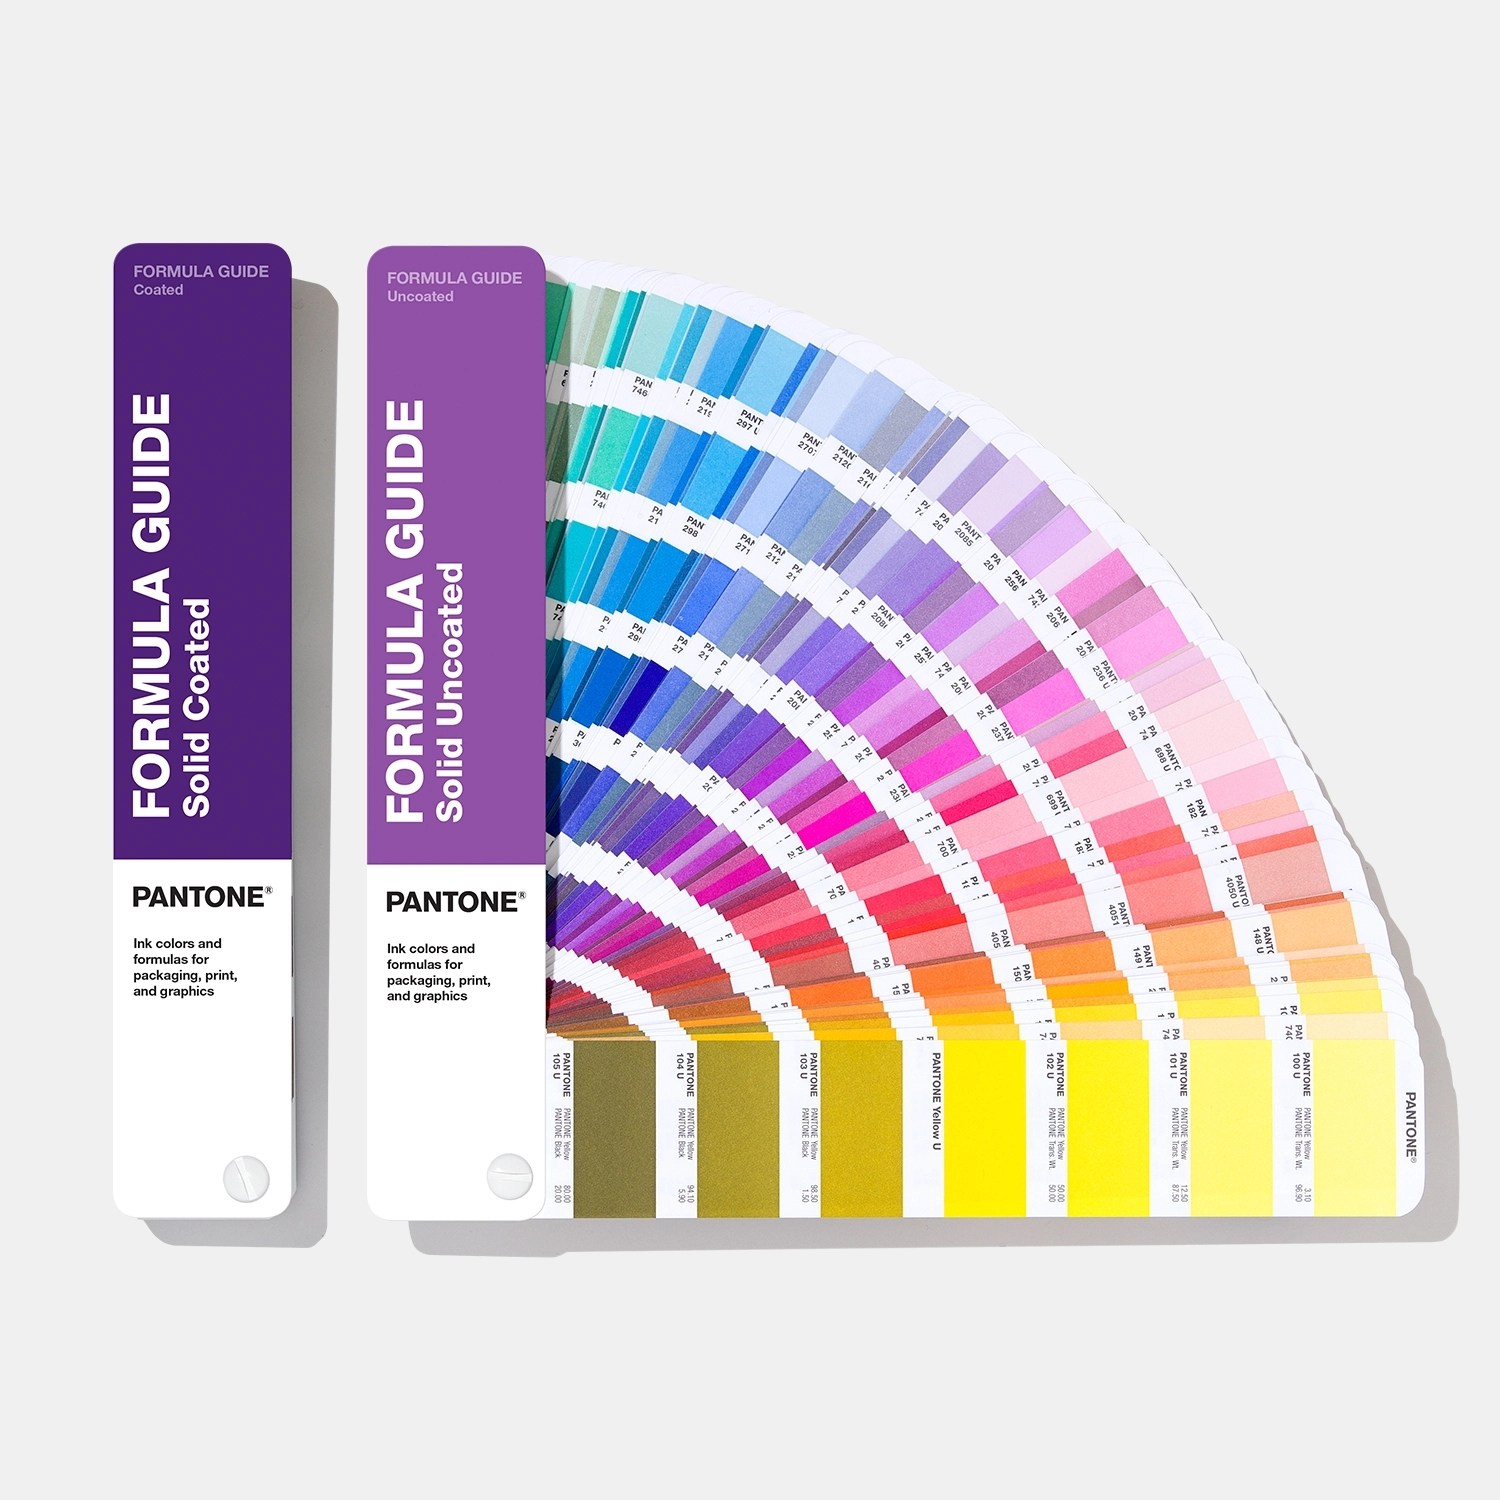 Formula Guide Coated And Uncoated Pantone - Pantone Grises